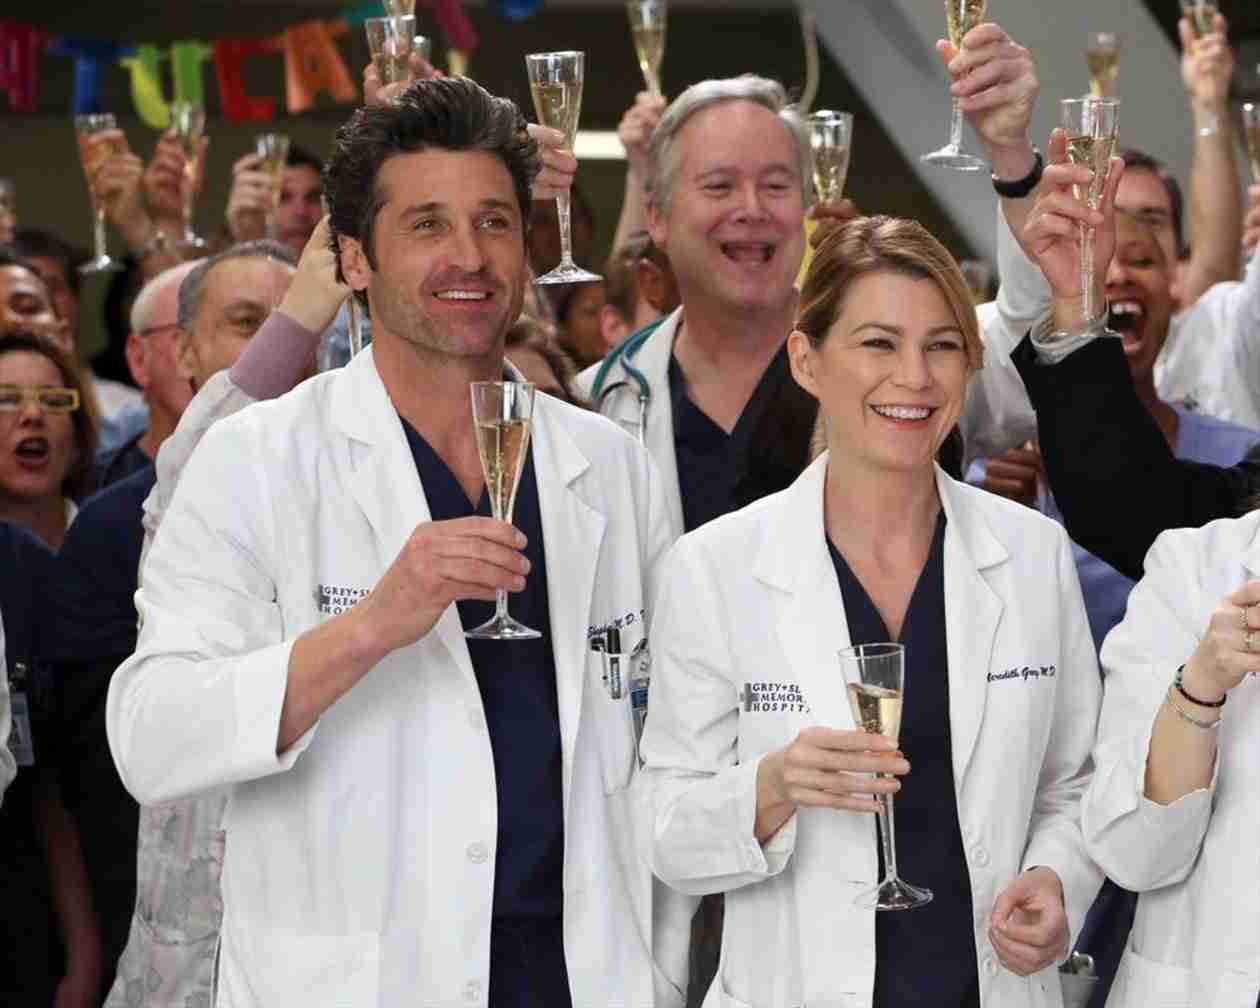 Grey's Anatomy: When Does Season 11 Premiere?